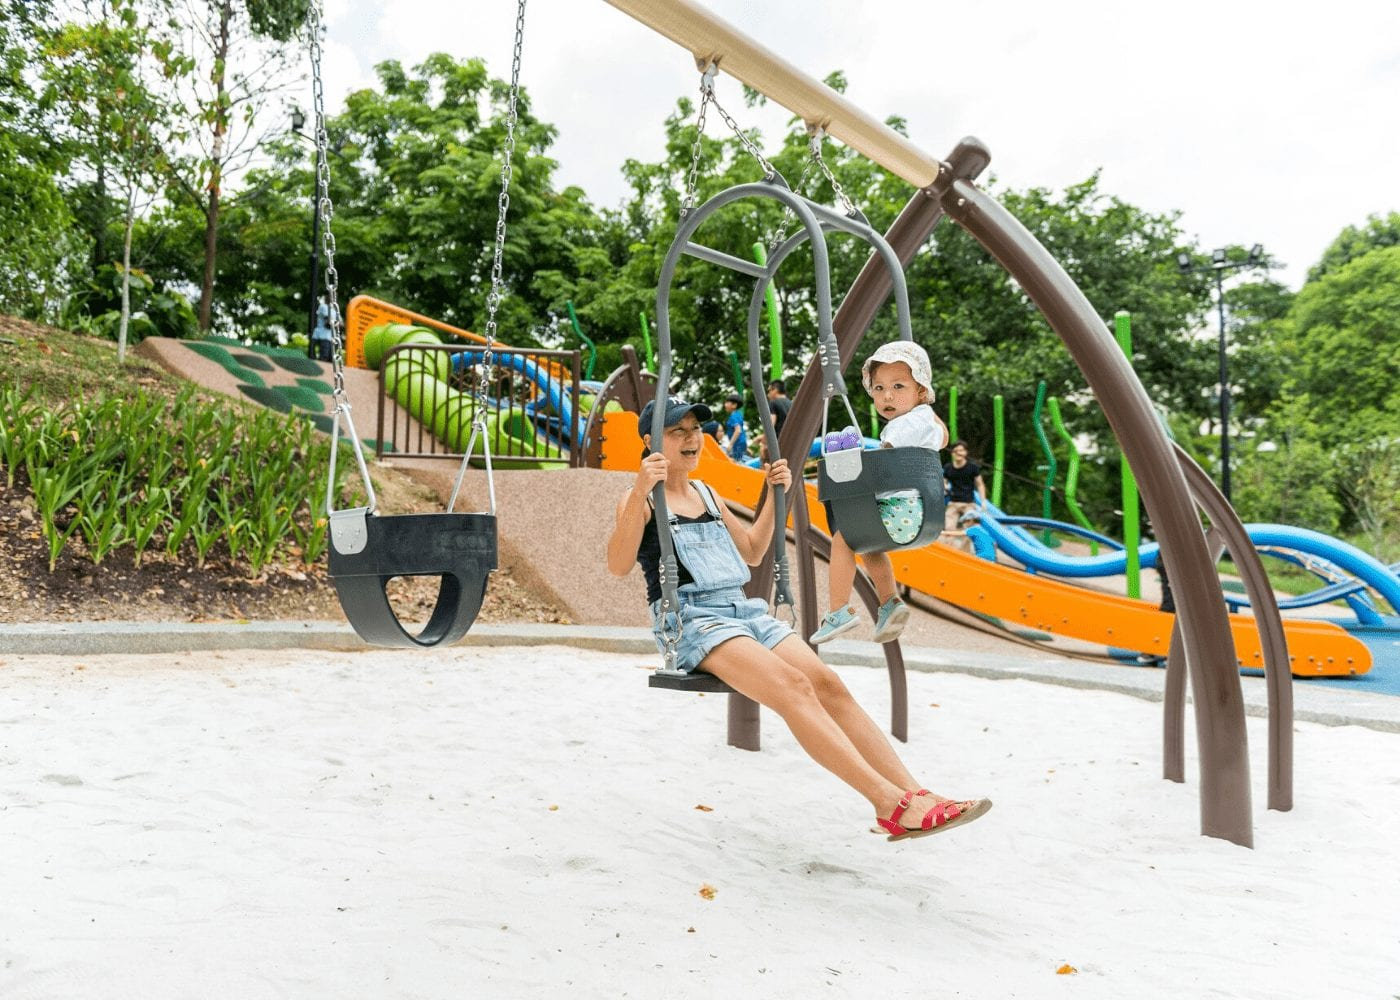 mum-and-kid-on-a-swing-admiralty-park Free things to do with kids in Singapore